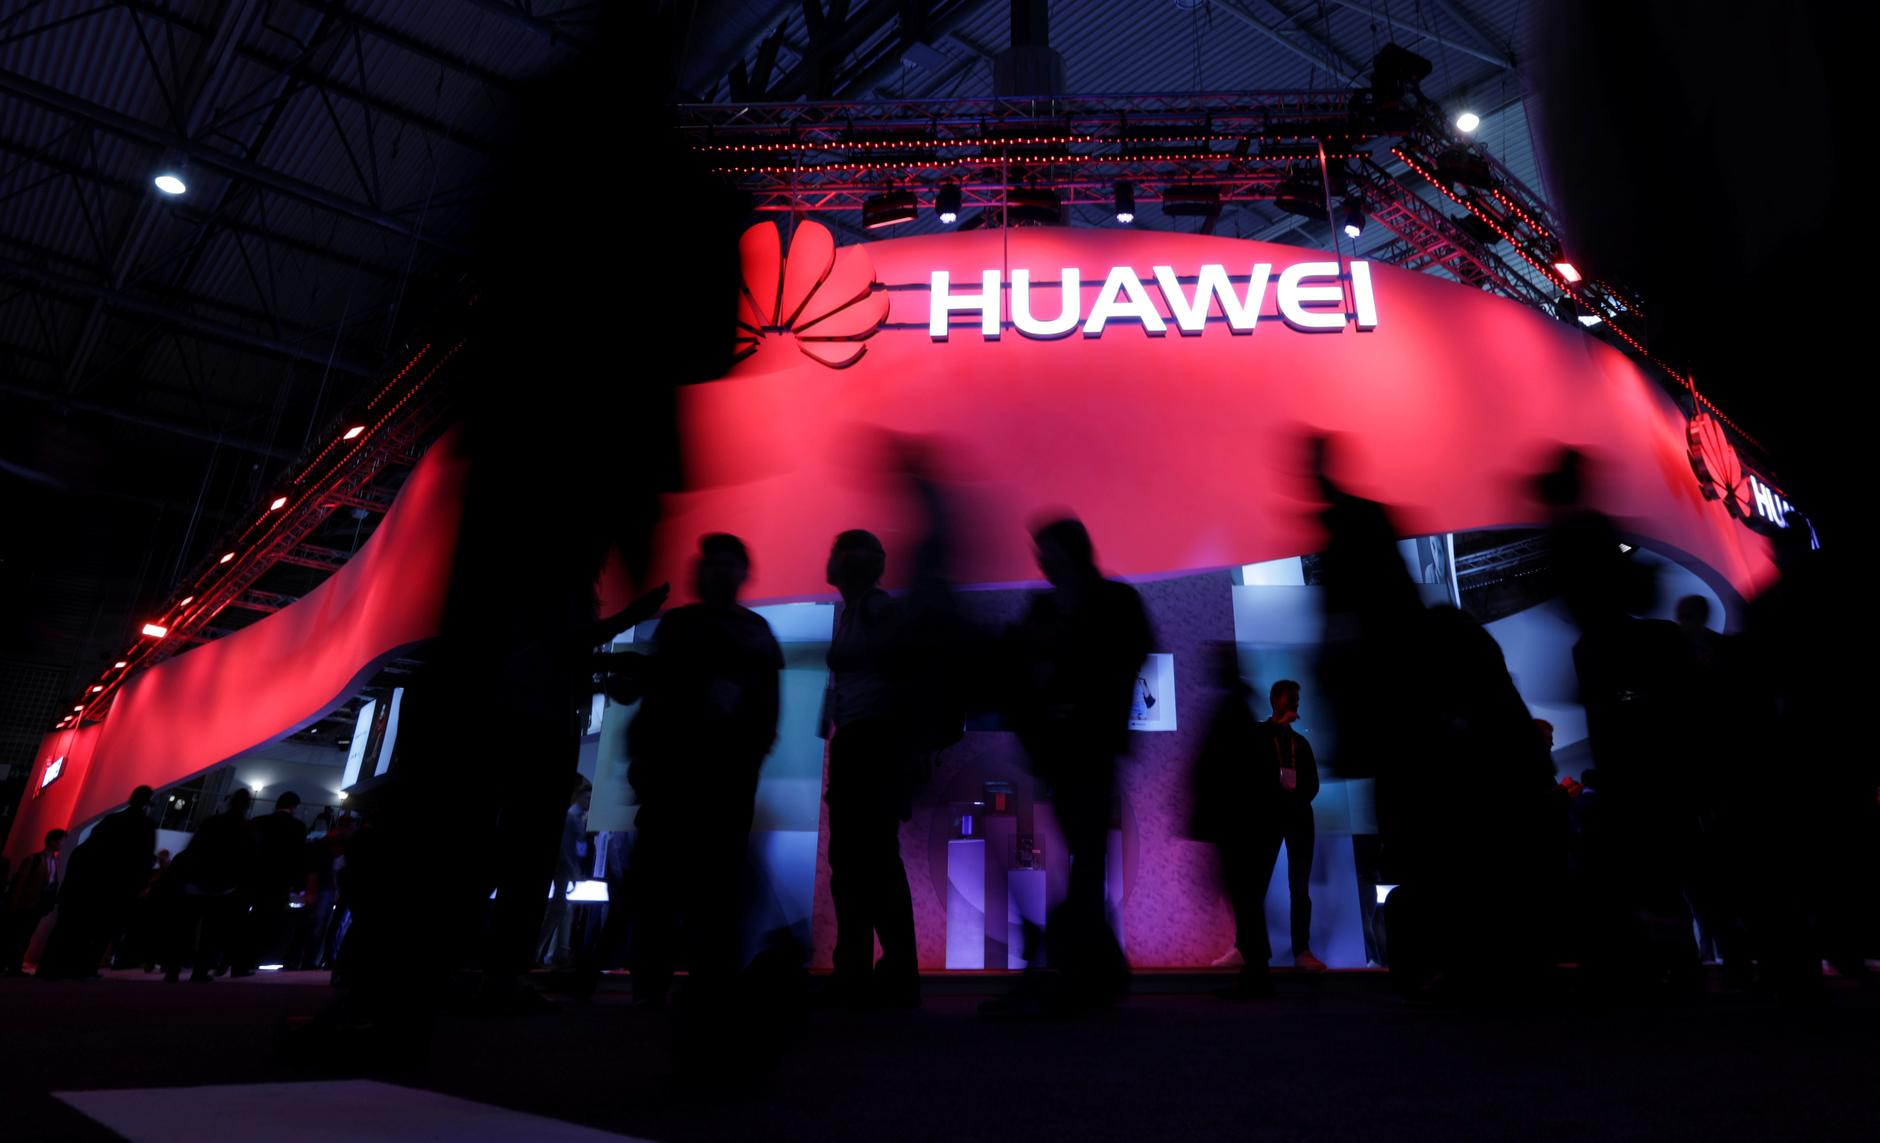 Google revokes Huawei's Android license